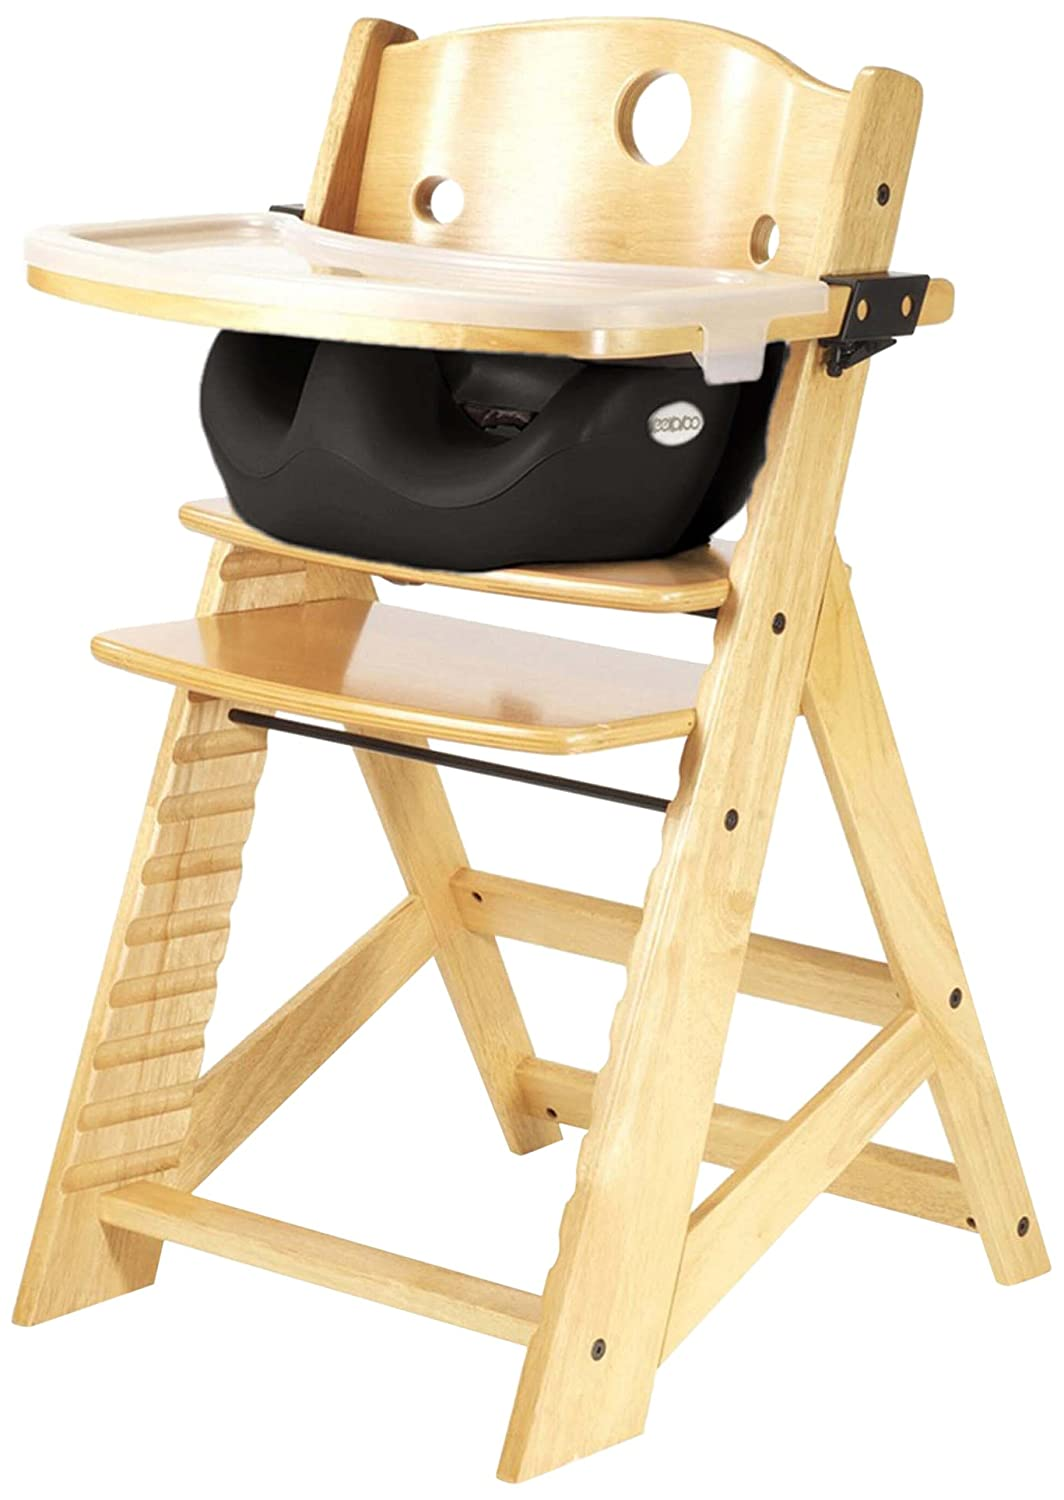 Keekaroo Height Right High Chair Natural with Black Infant Insert and Tray, Natural/Black